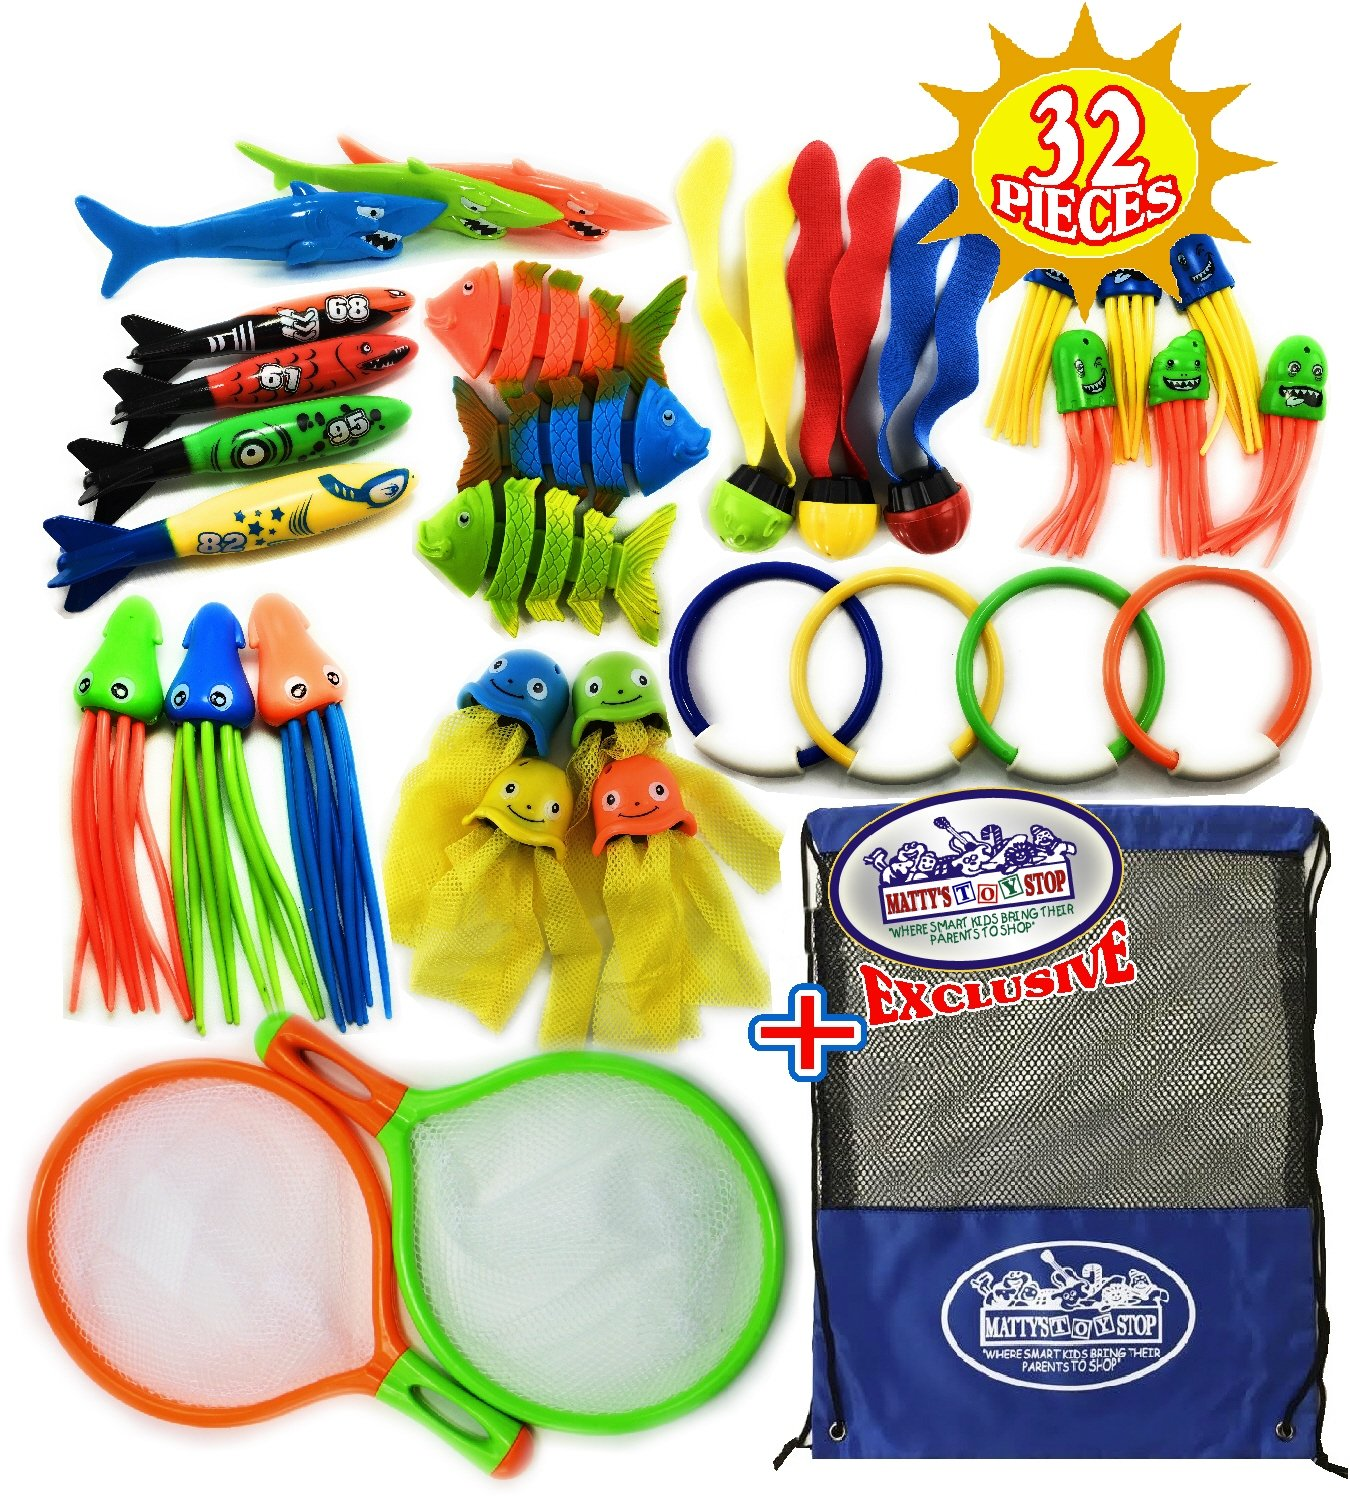 Matty's Toy Stop 32 Piece Ultimate Dive Set for Diving/Swimming Pools Featuring Dive Rings, Balls, Fish, Torpedo, Shark, Octopus, Jellyfish, Fishing Nets & Bonus Storage Bag by Matty's Toy Stop